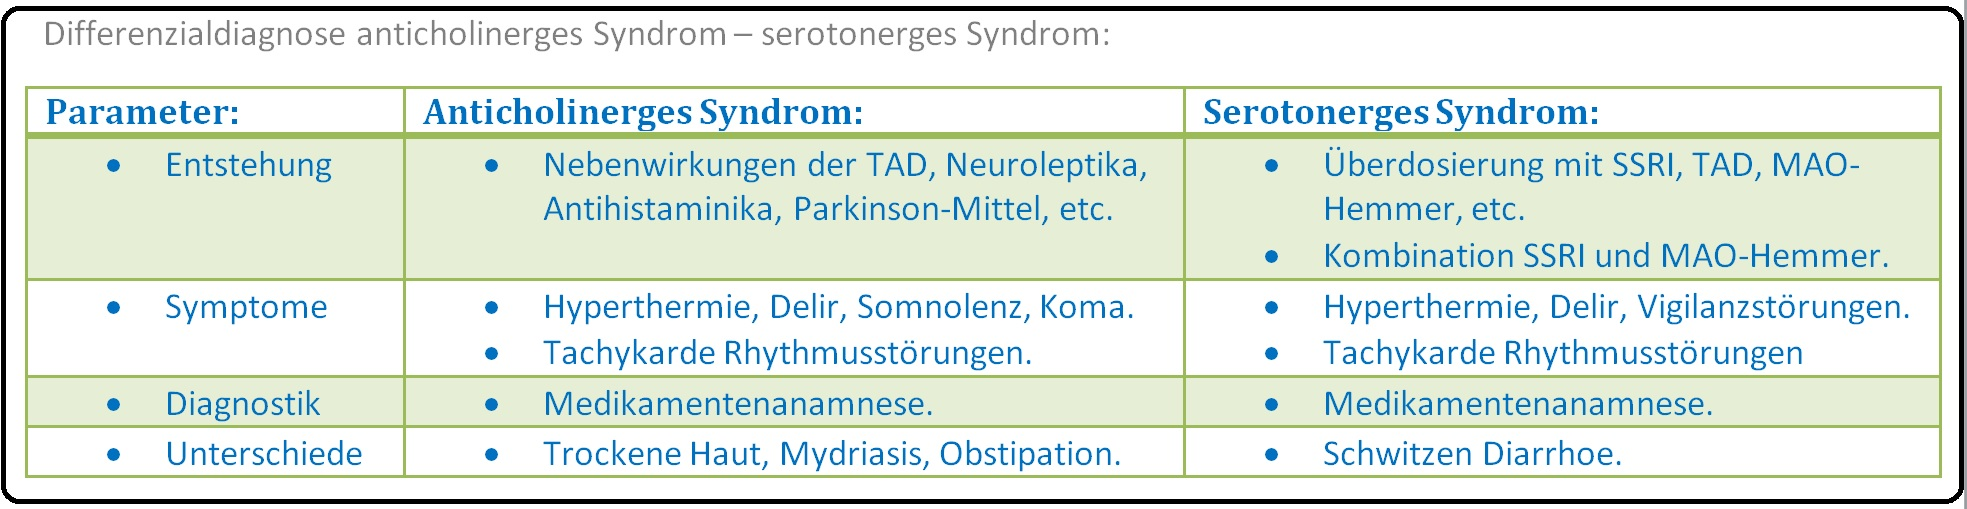 578 Differenzialdiagnose anticholinerges Syndrom   serotonerges Syndrom